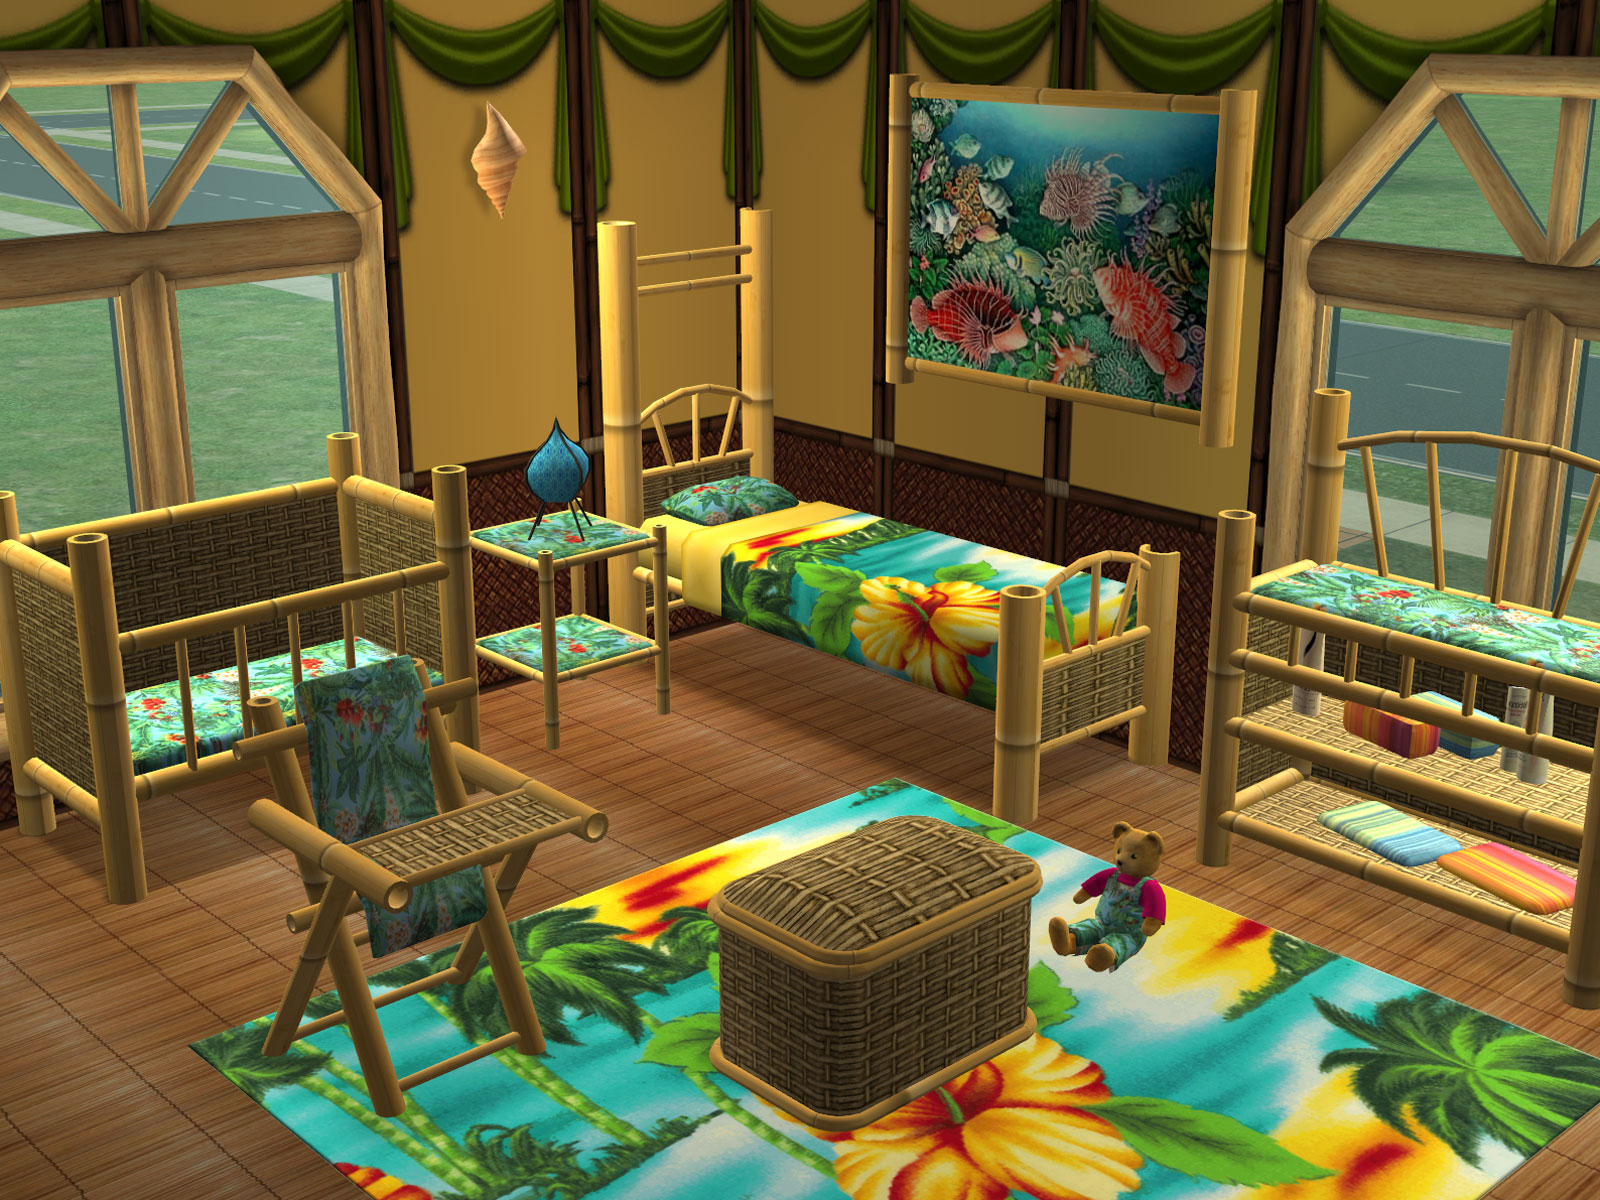 http://www.parsimonious.org/furniture2/files/k8-Very_Tikki_Nursery.jpg